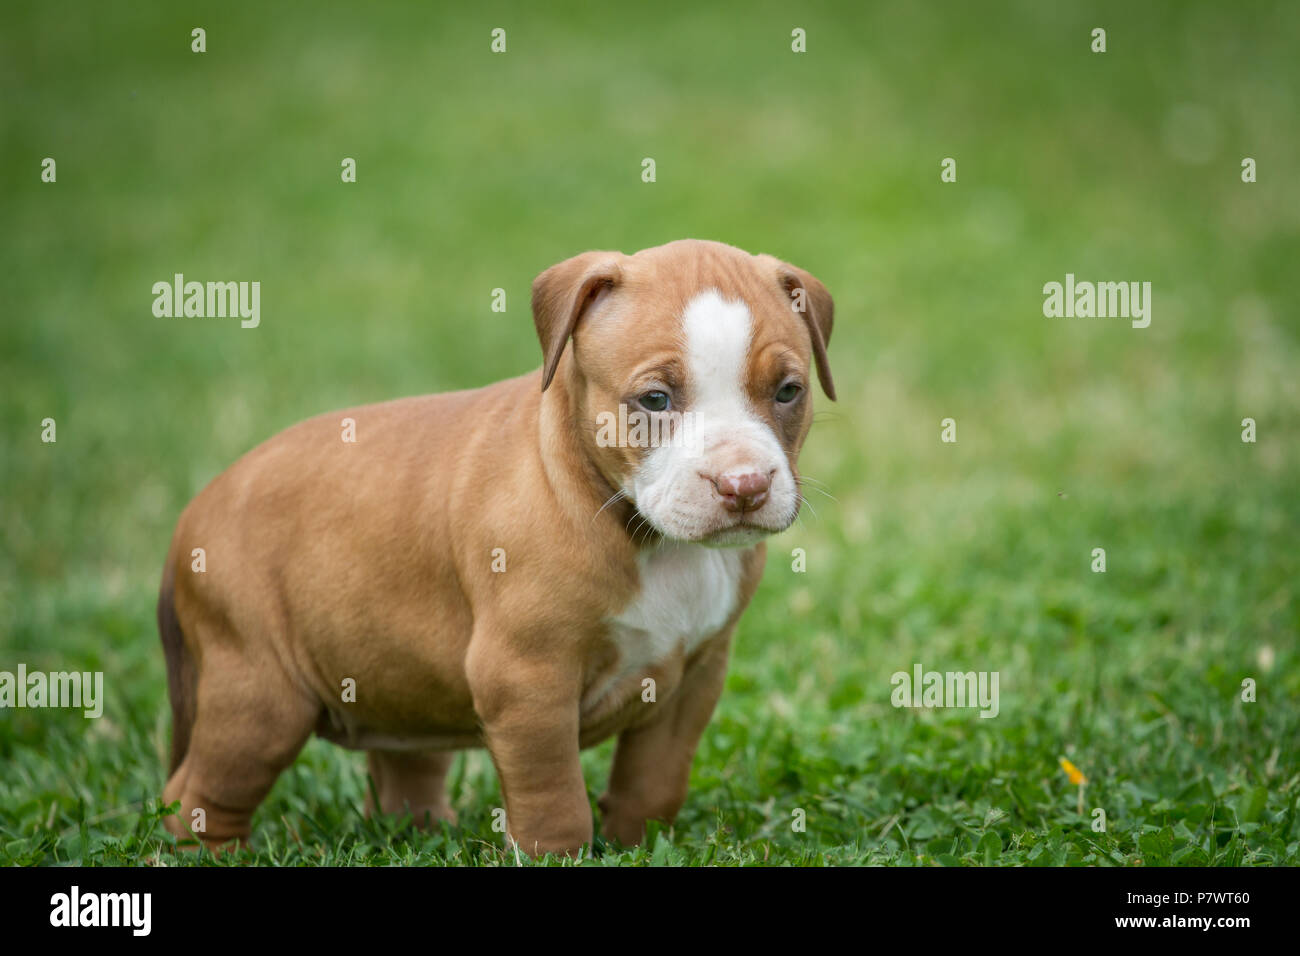 American Pit Bull Terrier puppy, Czech Republic - Stock Image